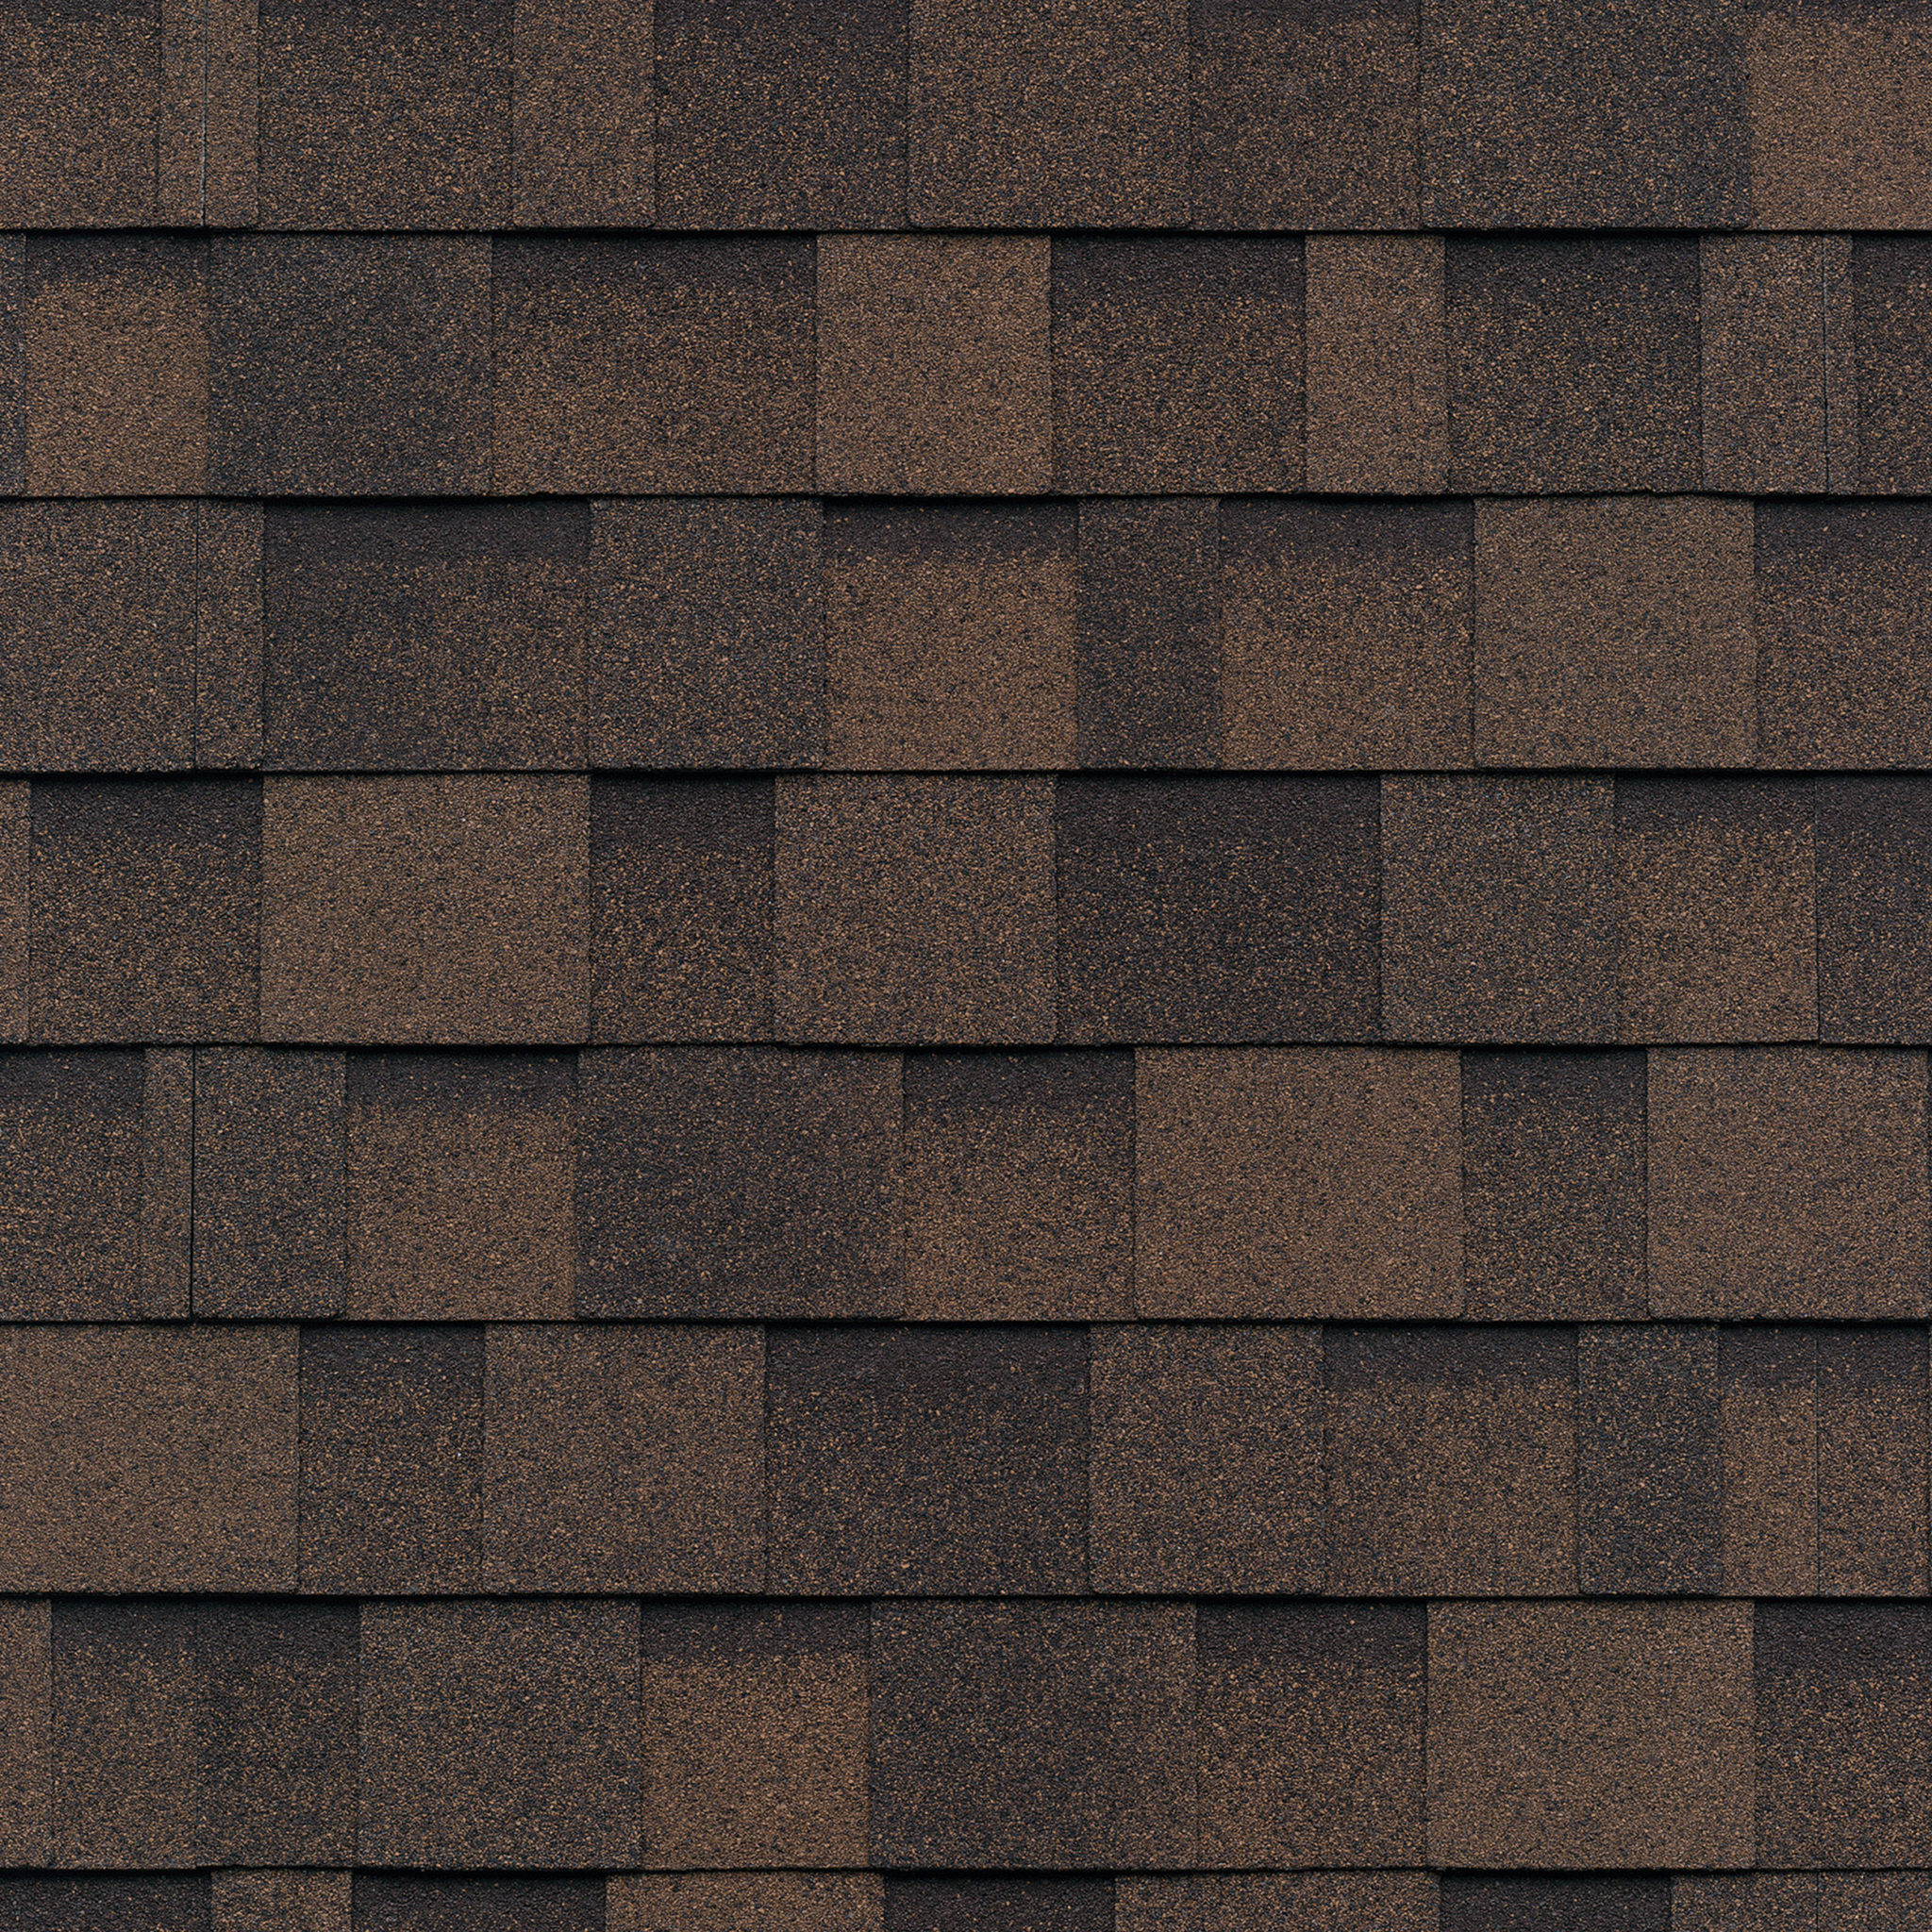 Shingles-Cambridge-Dual-Brown